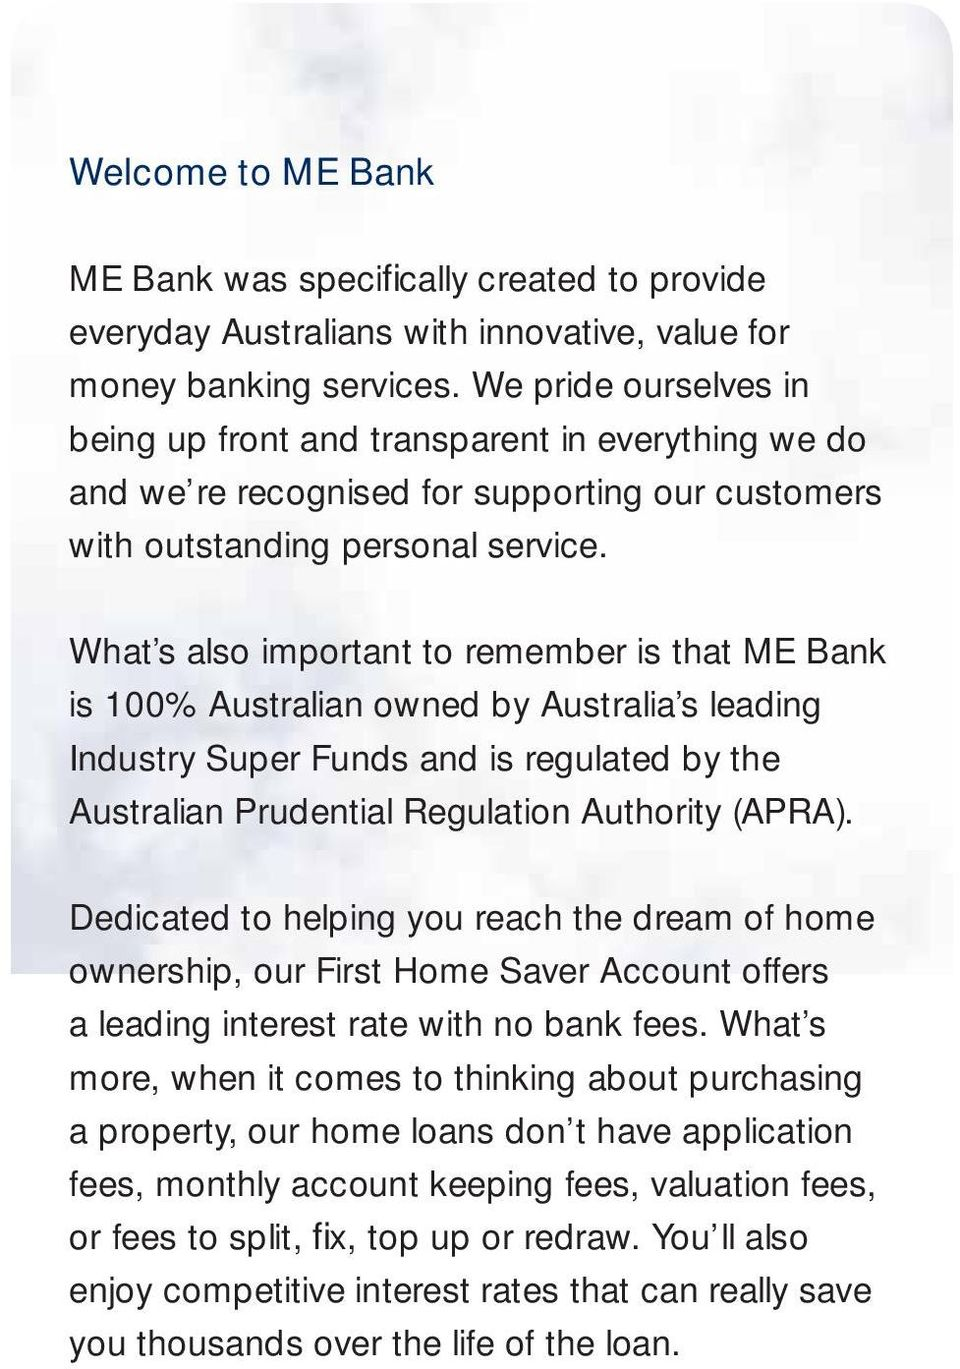 What s also important to remember is that ME Bank is 100% Australian owned by Australia s leading Industry Super Funds and is regulated by the Australian Prudential Regulation Authority (APRA).